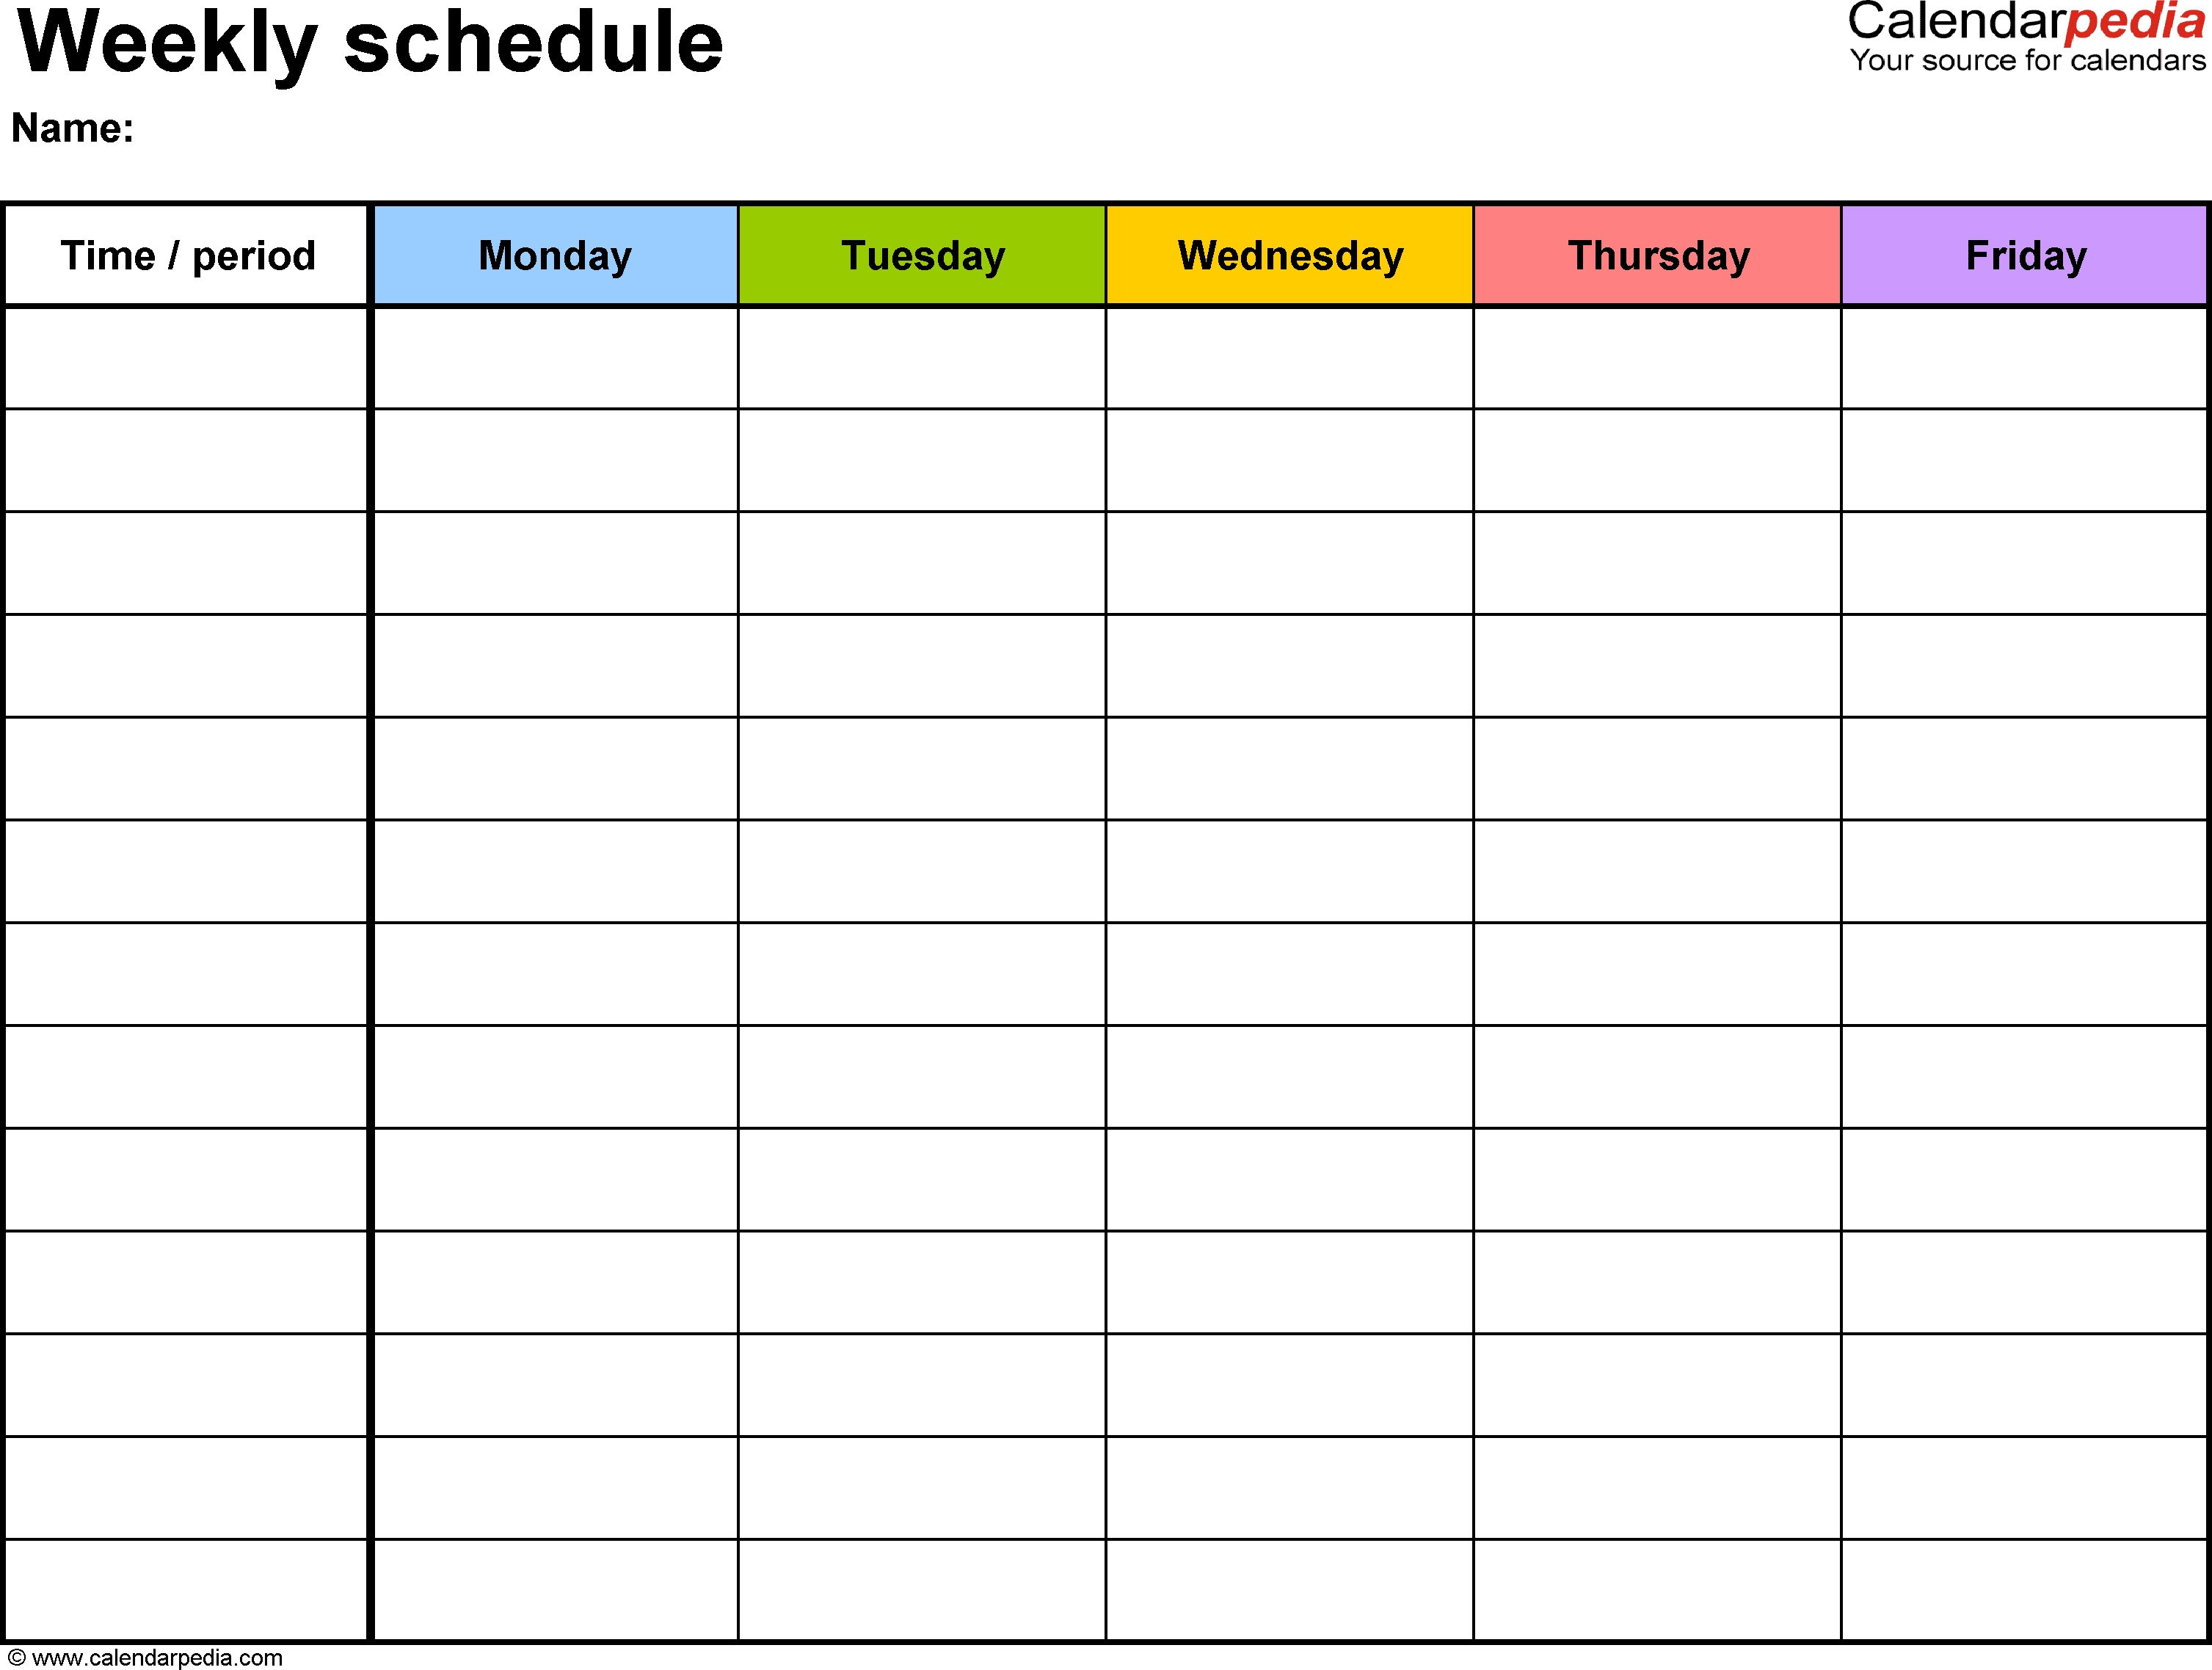 Free Weekly Schedule Templates For Excel - 18 Templates for Excel Calendar By Day For Planning